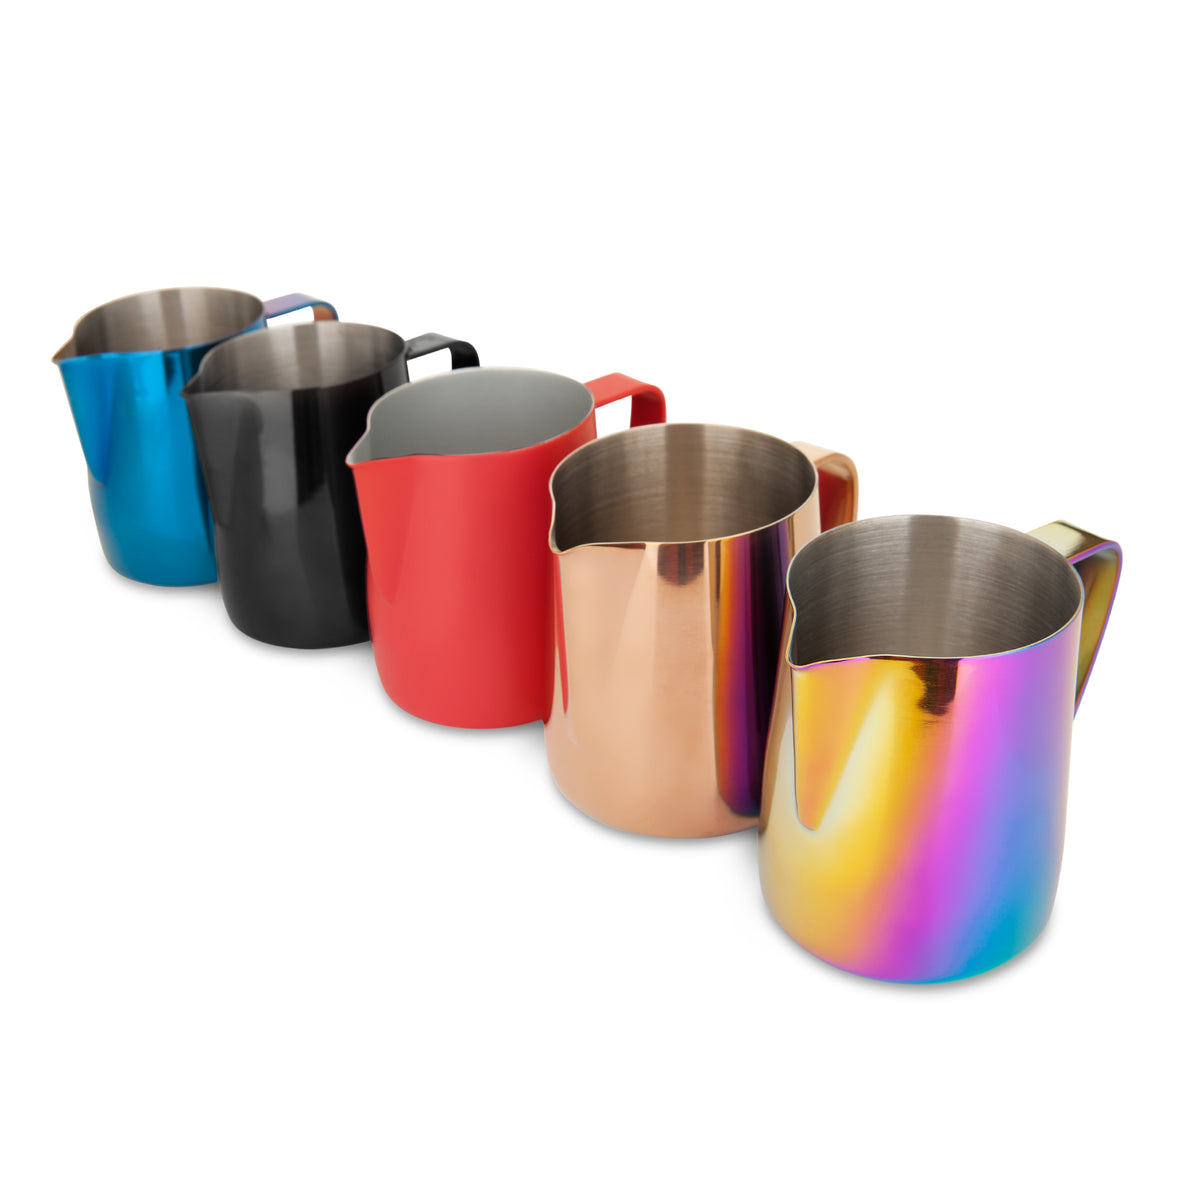 All colors of the EspressoWorks Stainless Steel Milk Frothing Jug